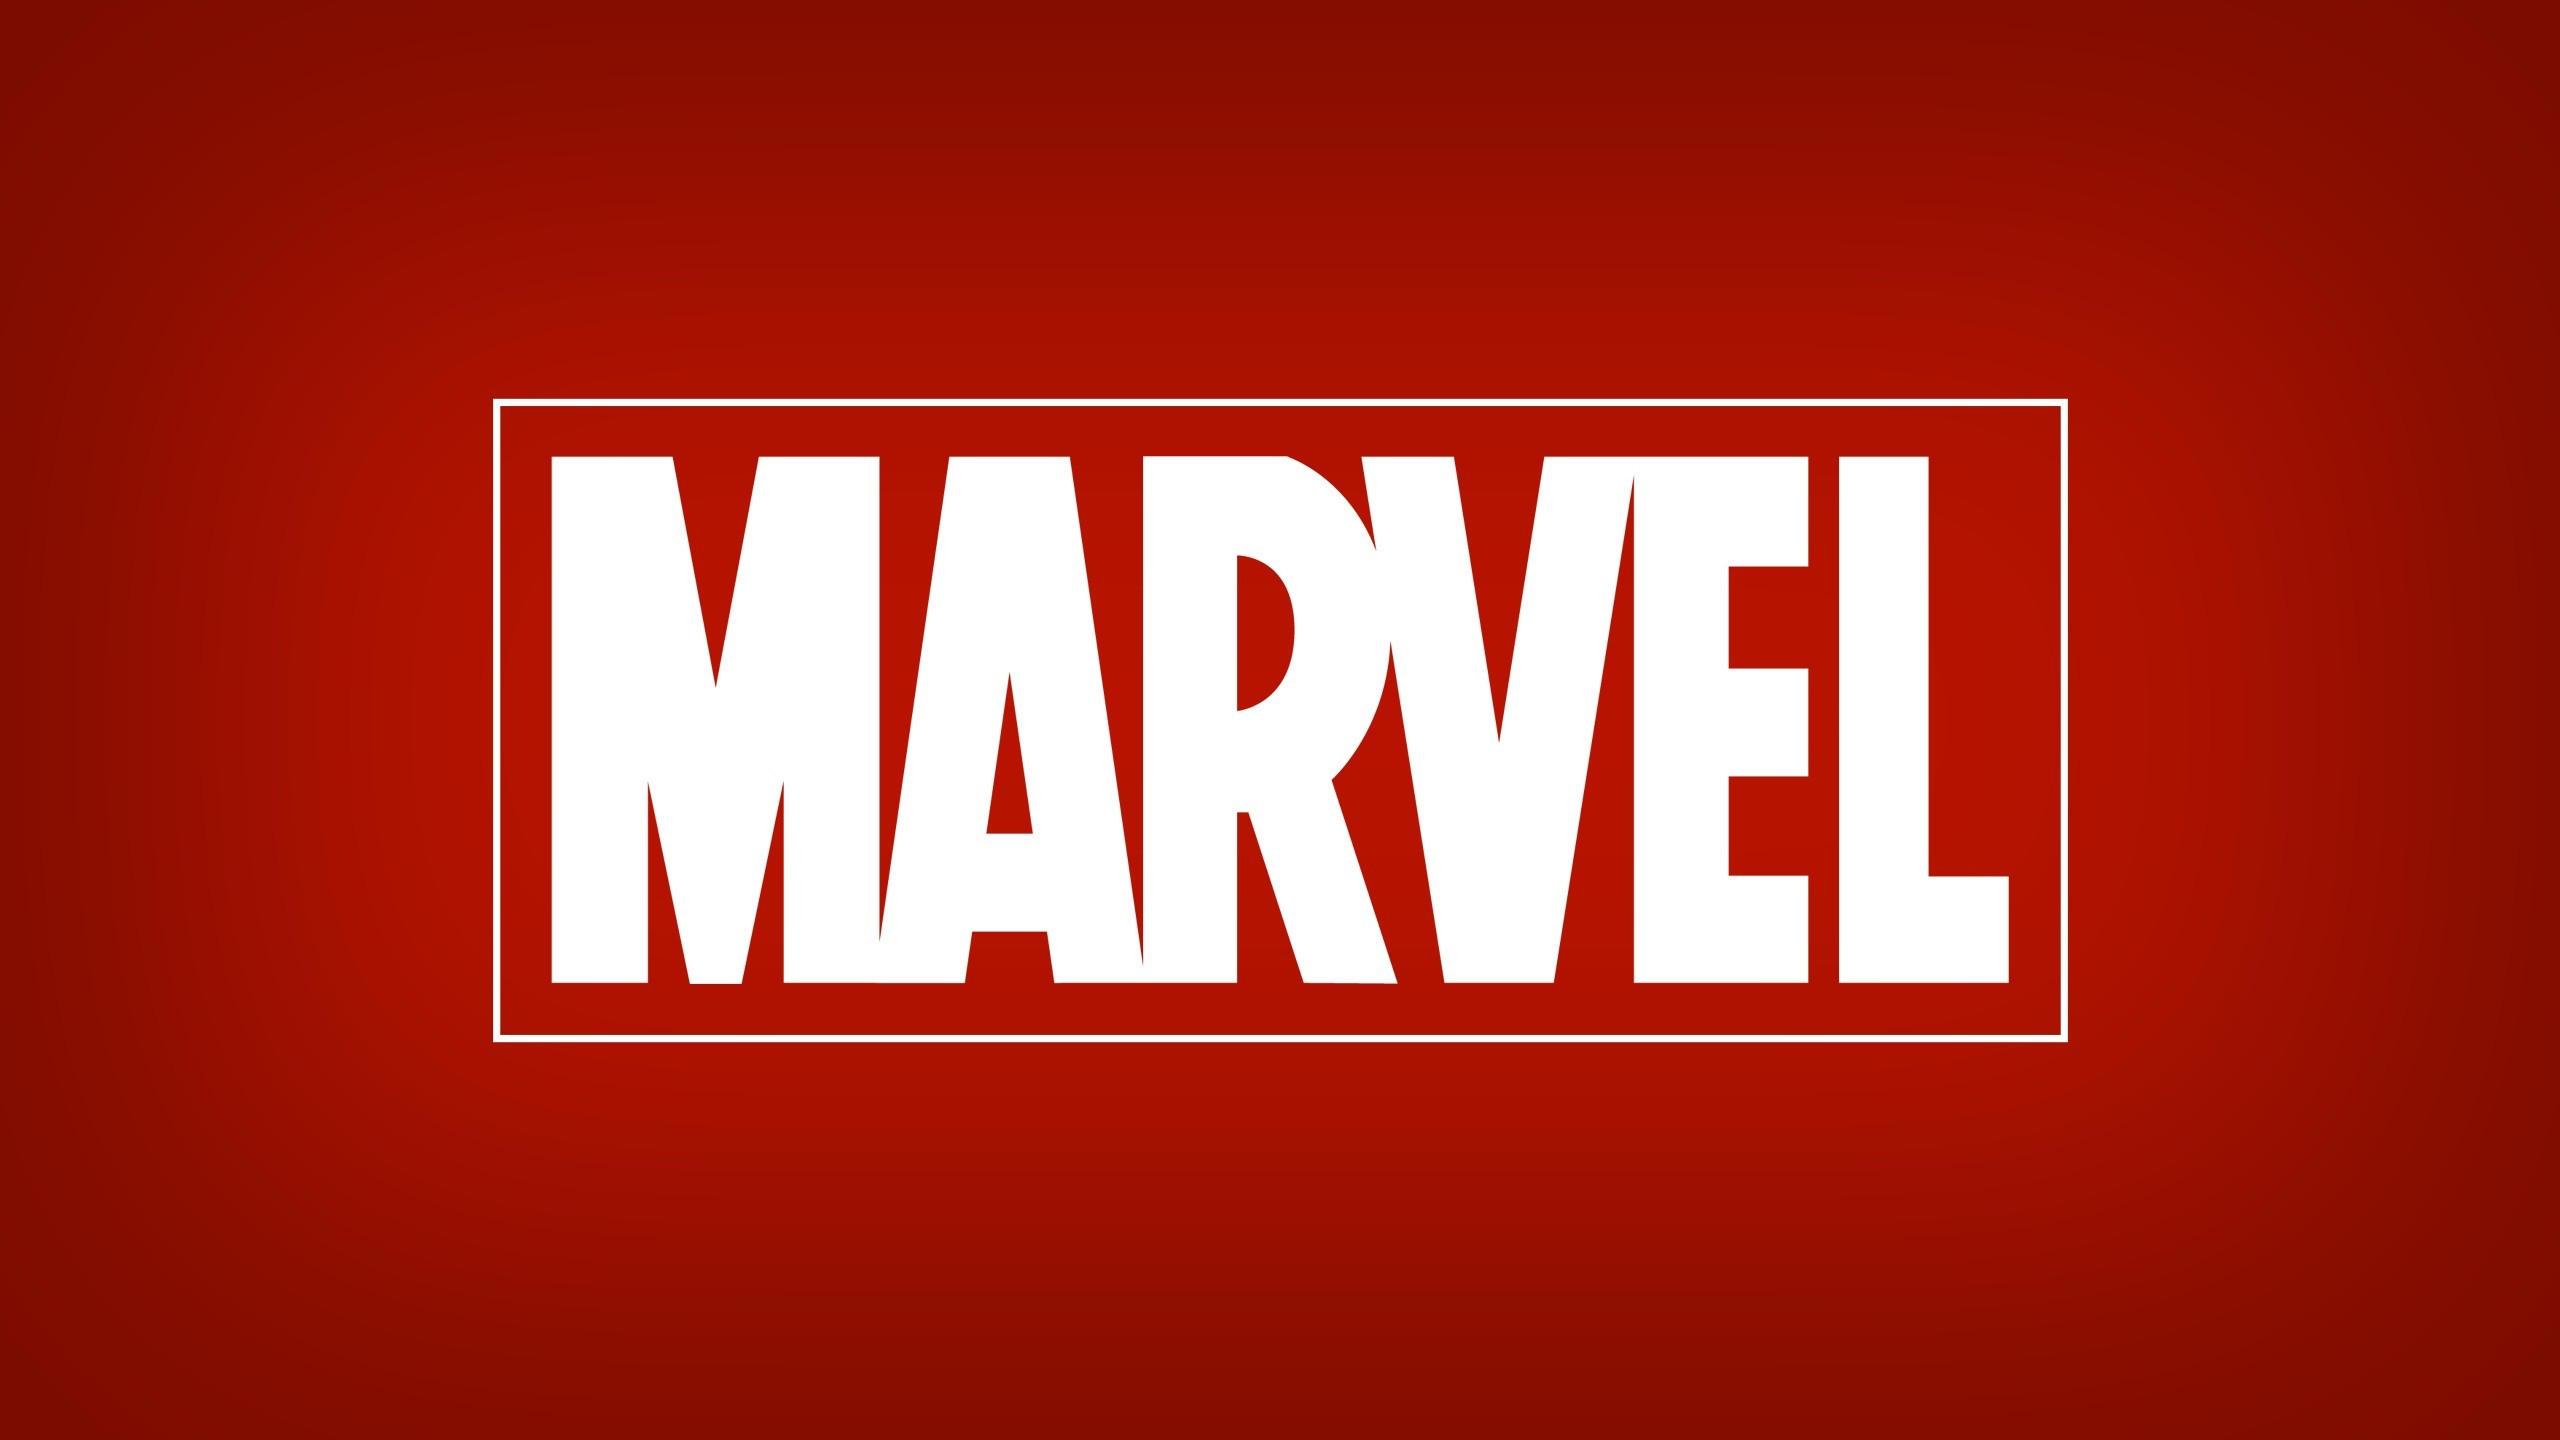 marvel comics wallpapers, images, backgrounds, photos and pictures